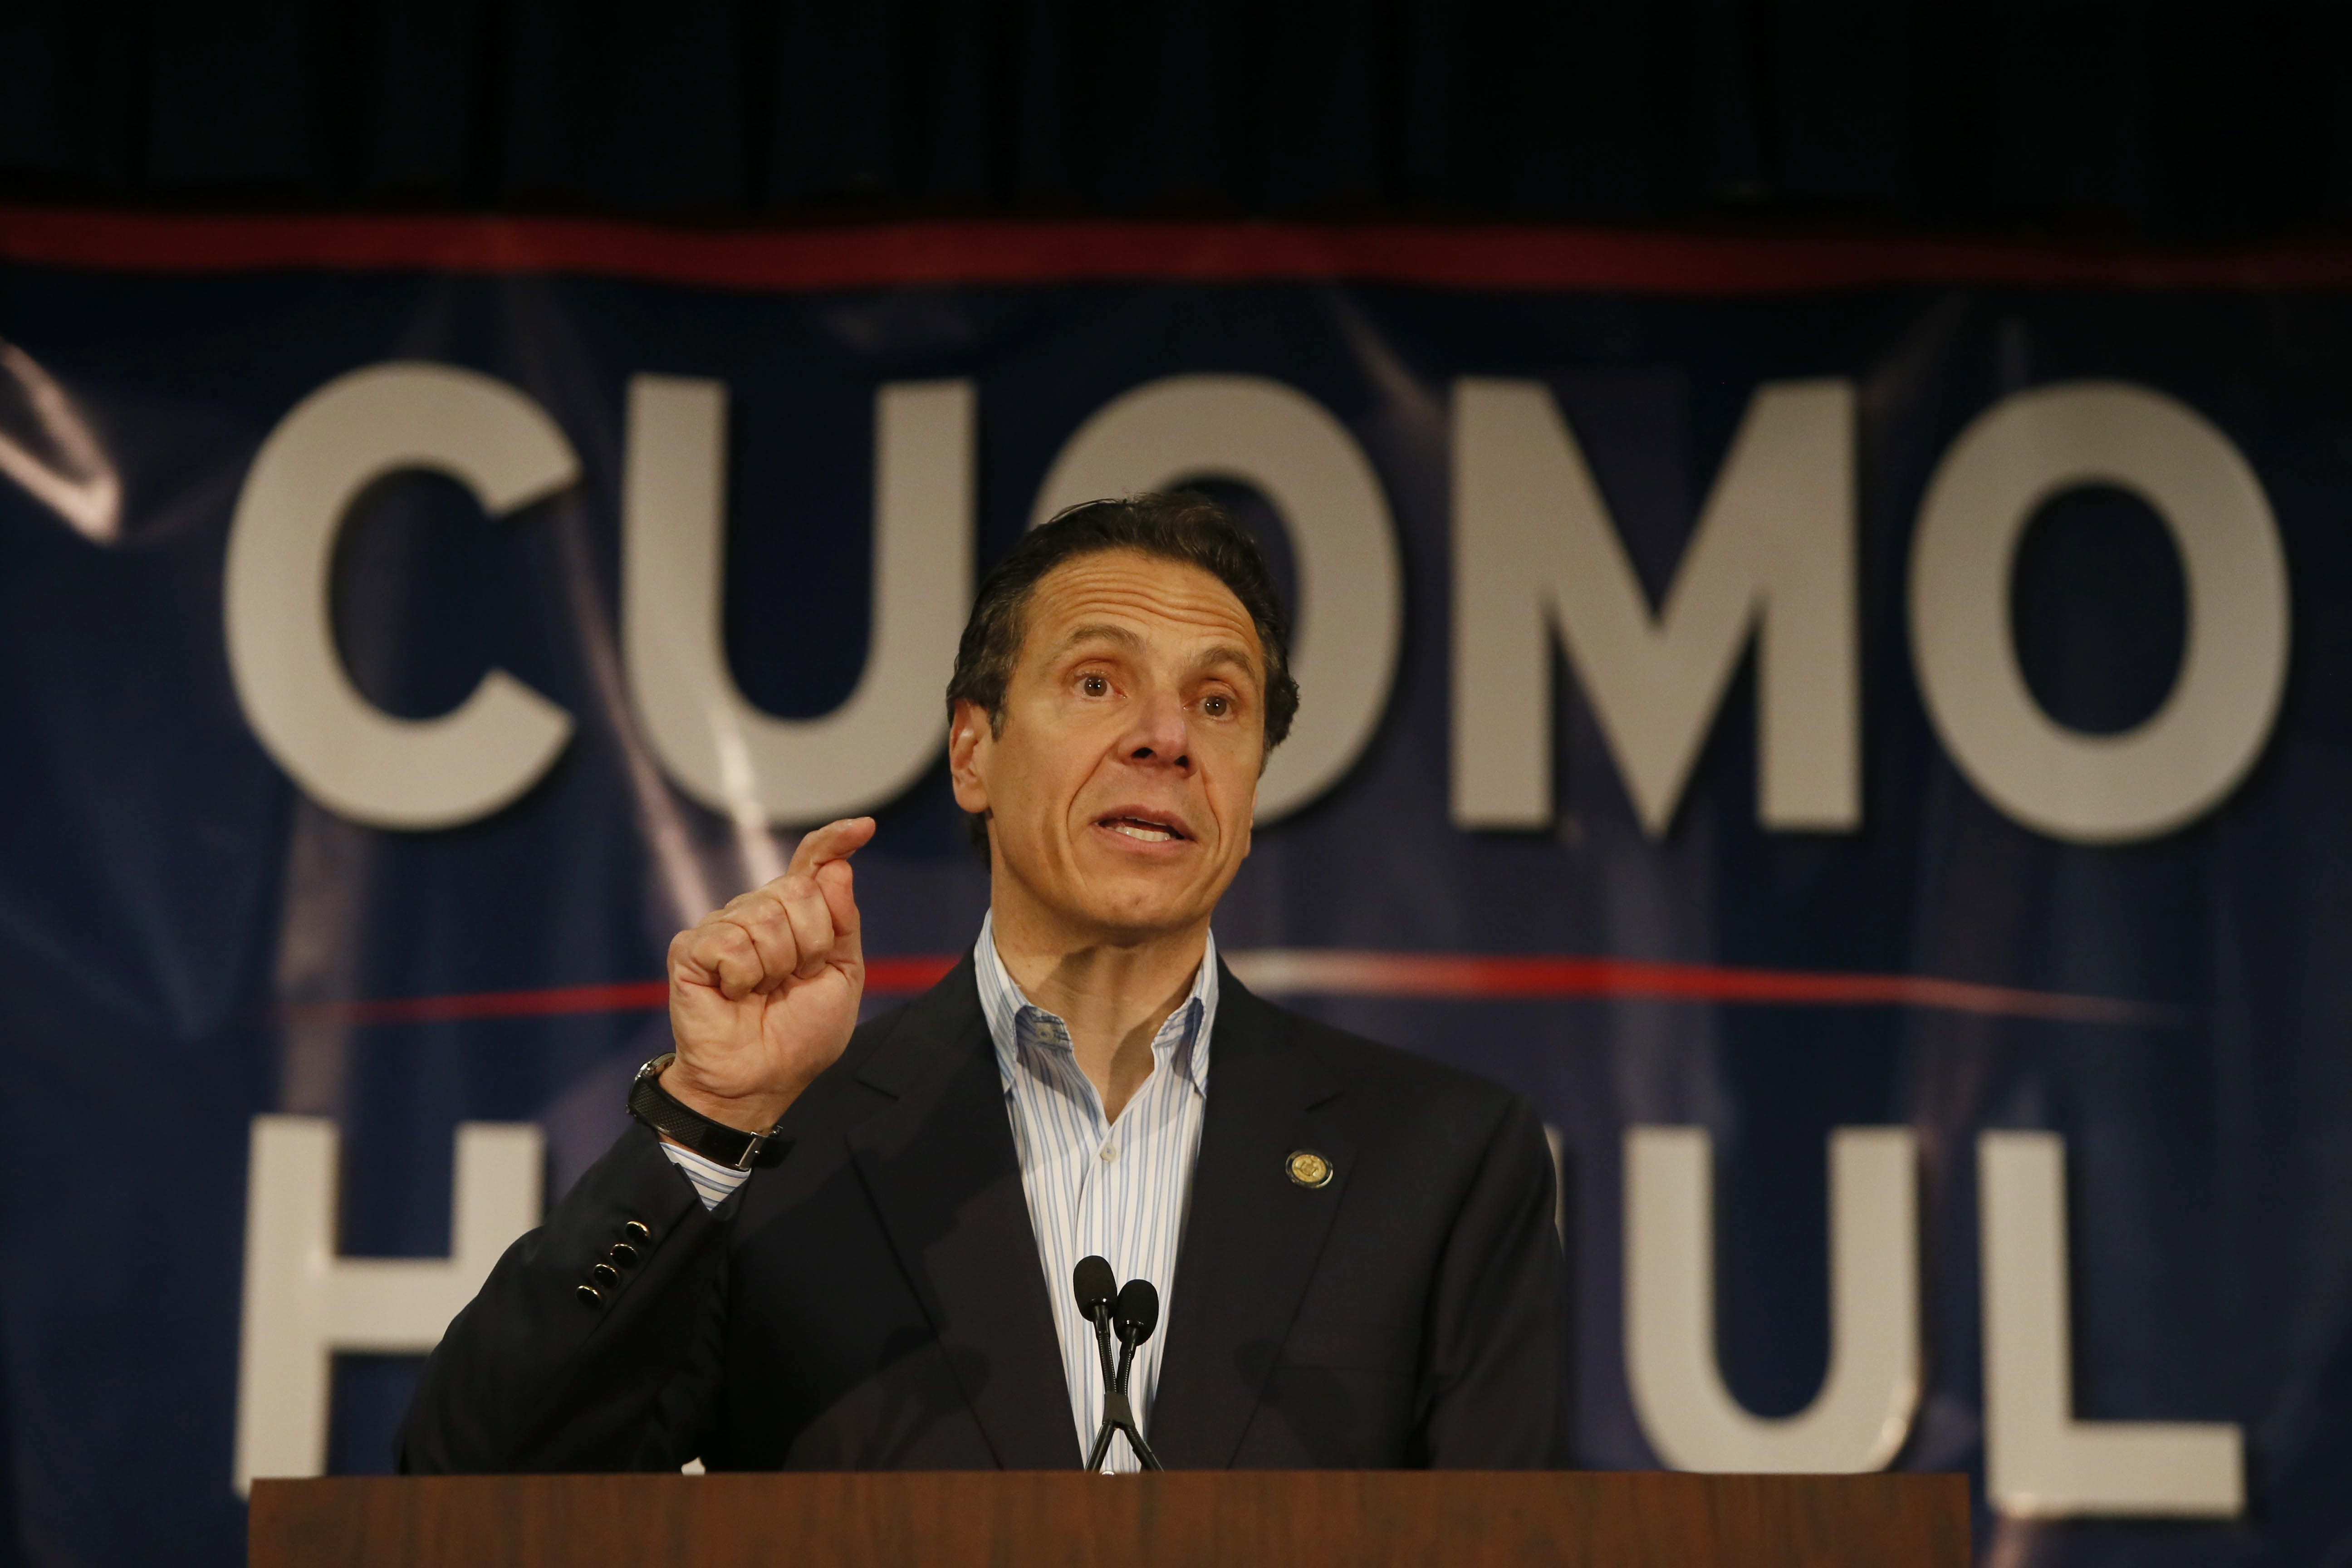 New York Gov. Andrew M. Cuomo, intent on getting the endorsement of the Working Families Party, said he will do all he can this fall to oust the Republicans and the band of five independent Democrats that control the state Senate. (Buffalo News file photo)